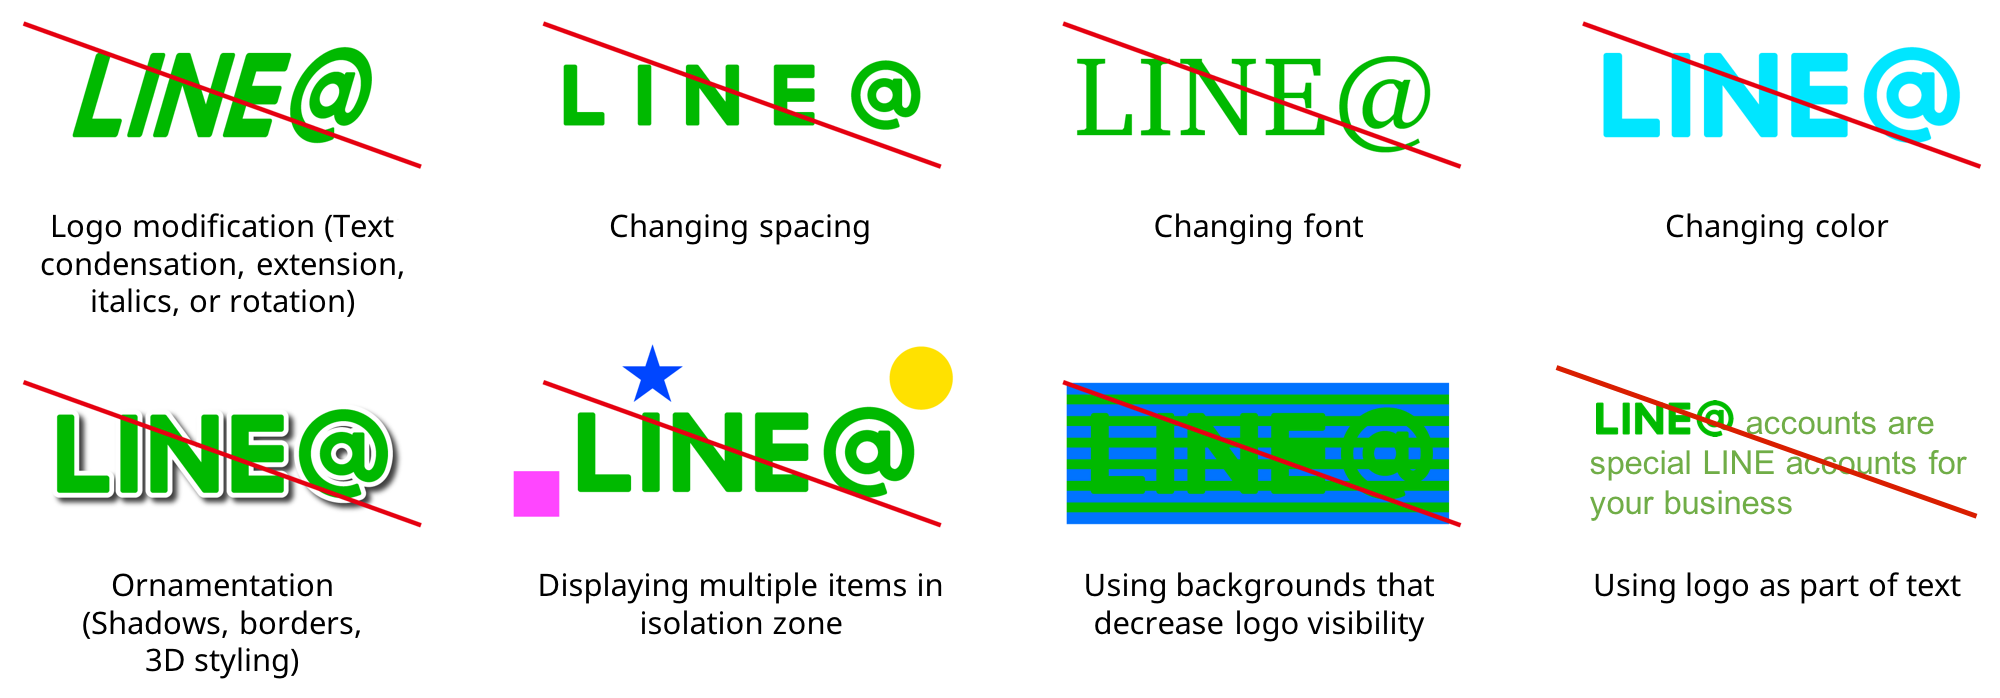 Logo modification, changing spacing/font/color, ornamentation, displaying items in isolation zone, using backgrounds that decrease logo visibility, using logo as part of text are prohibited